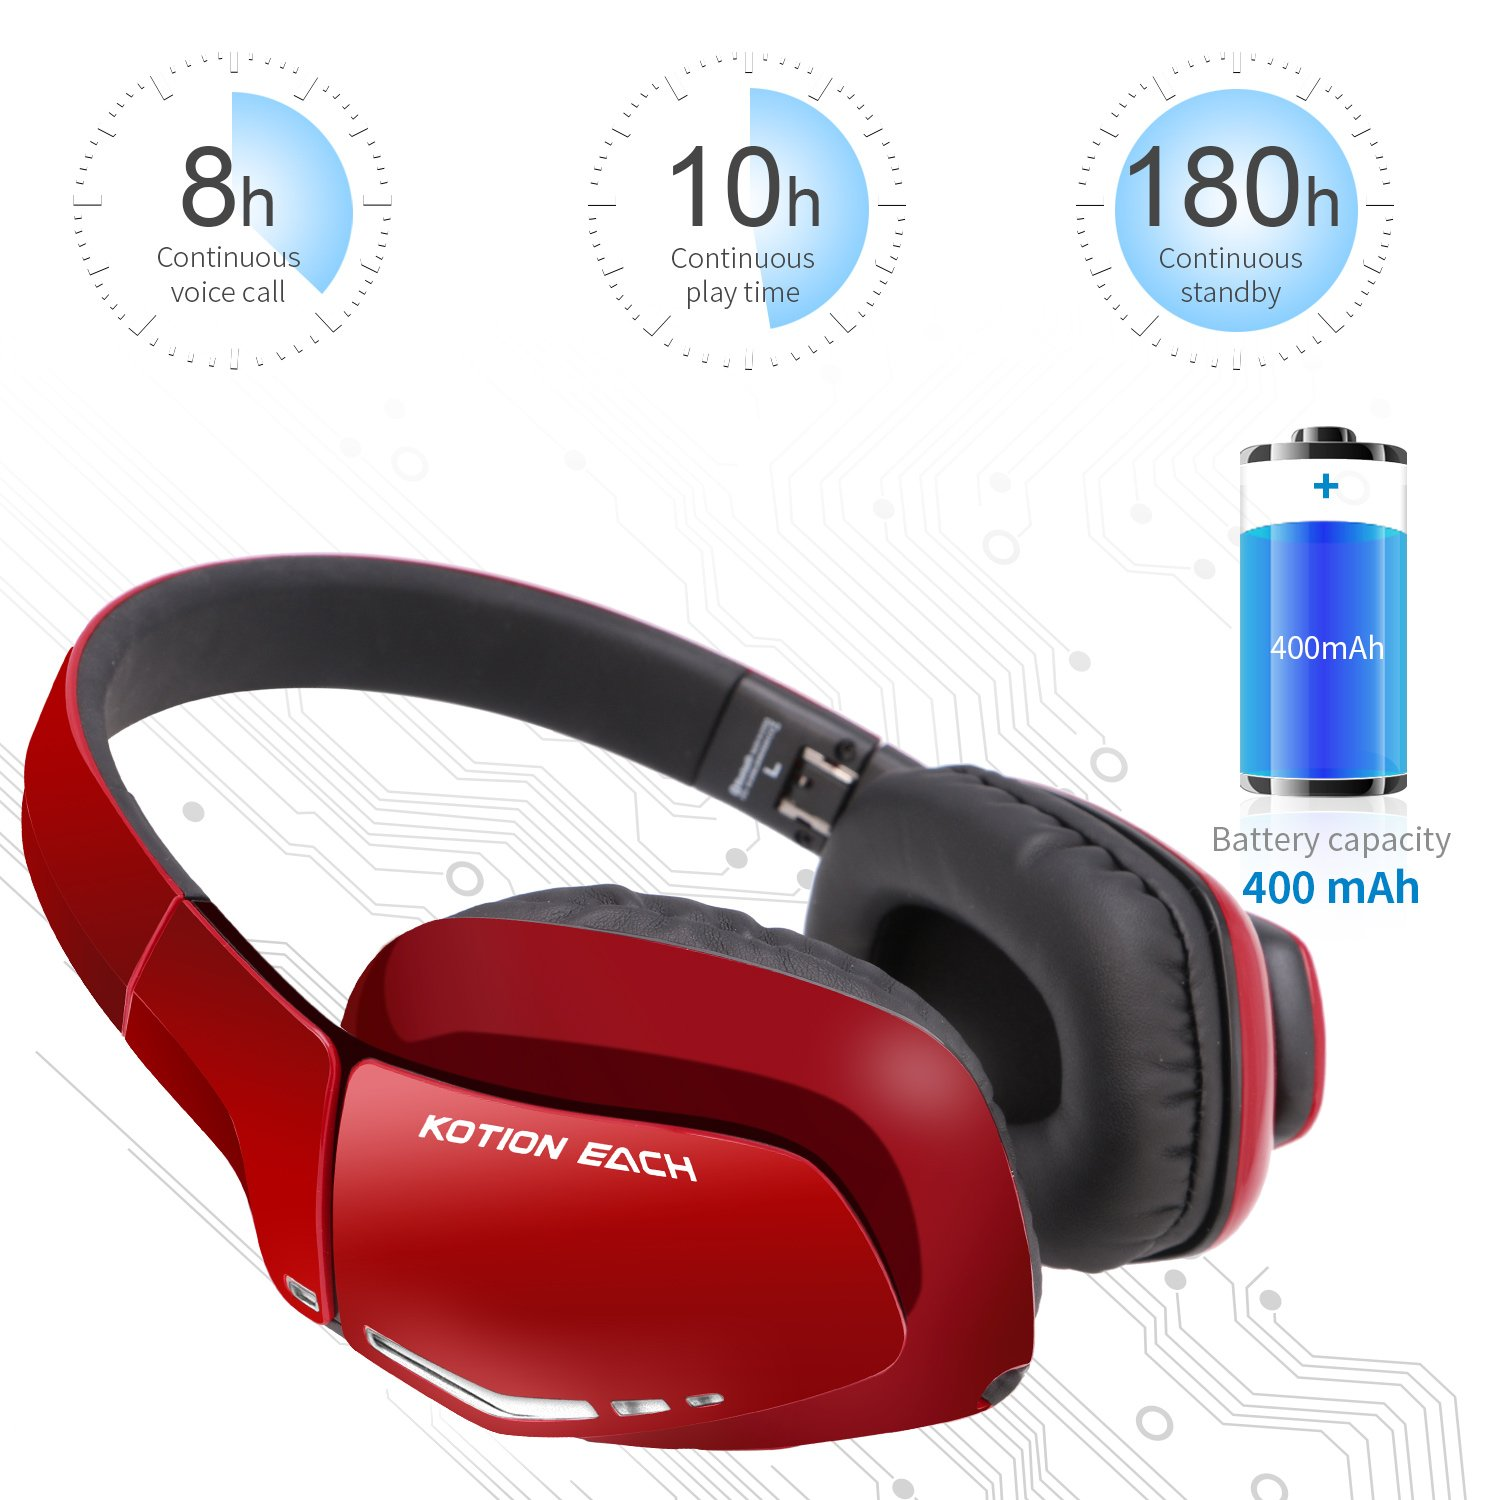 Bluetooth Headphones for PS4 XBOX ONE S, KOTION EACH B3506 Wireless Headset Foldable Gaming Headset V4.1 with Mic for Playstation 4 PC Mac Smartphones Computers (Red)